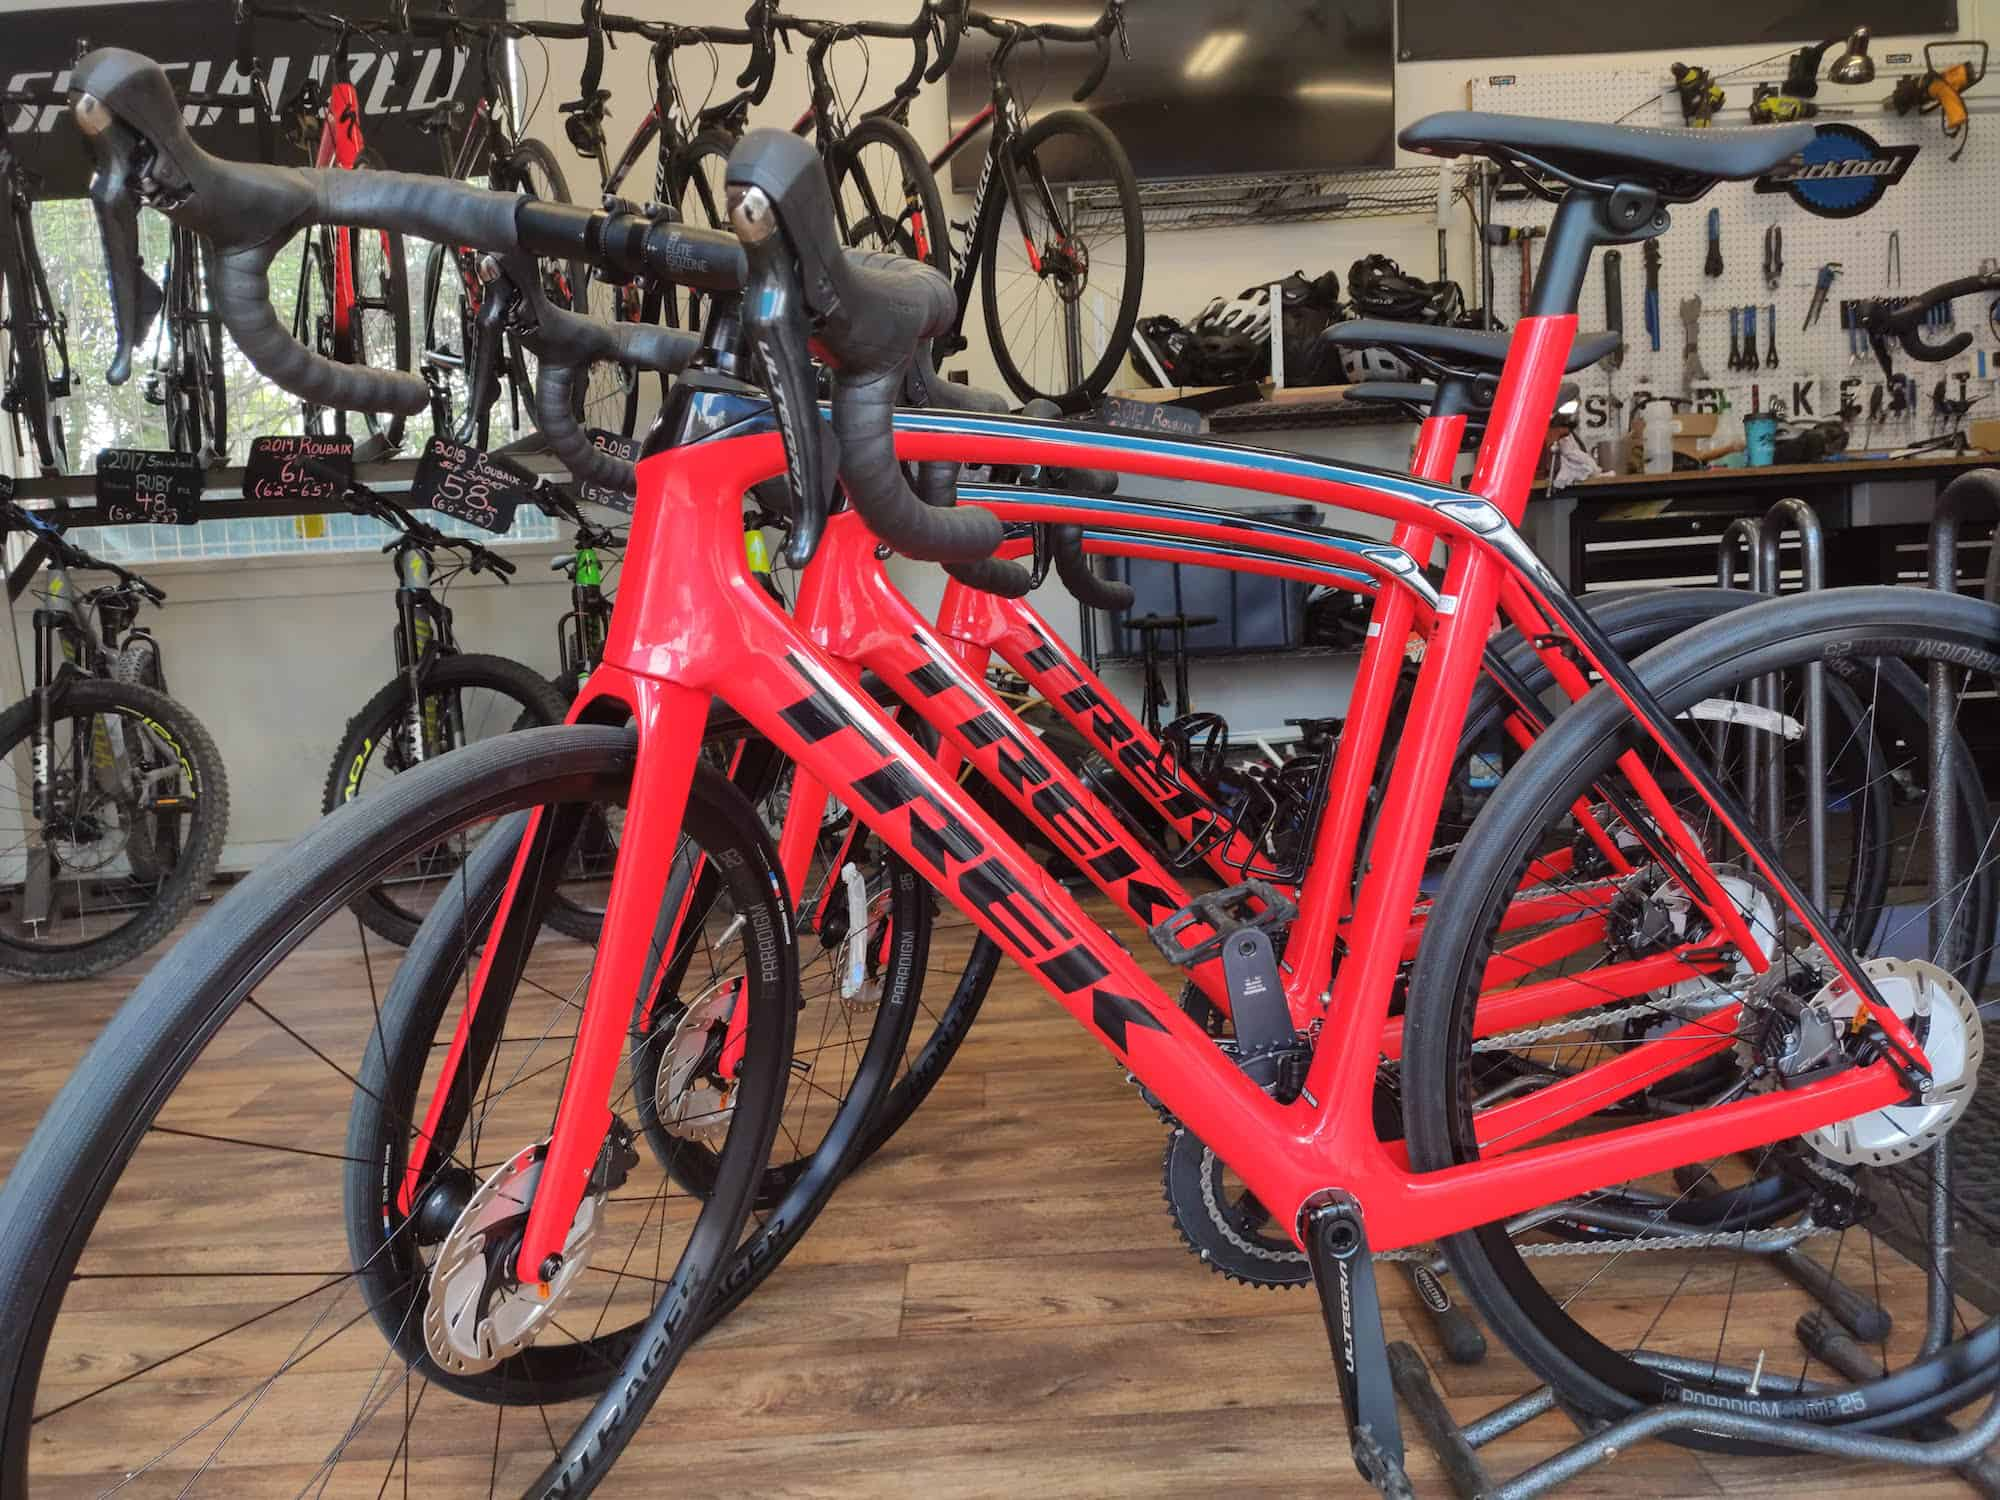 bike rental shop - new road bikes!